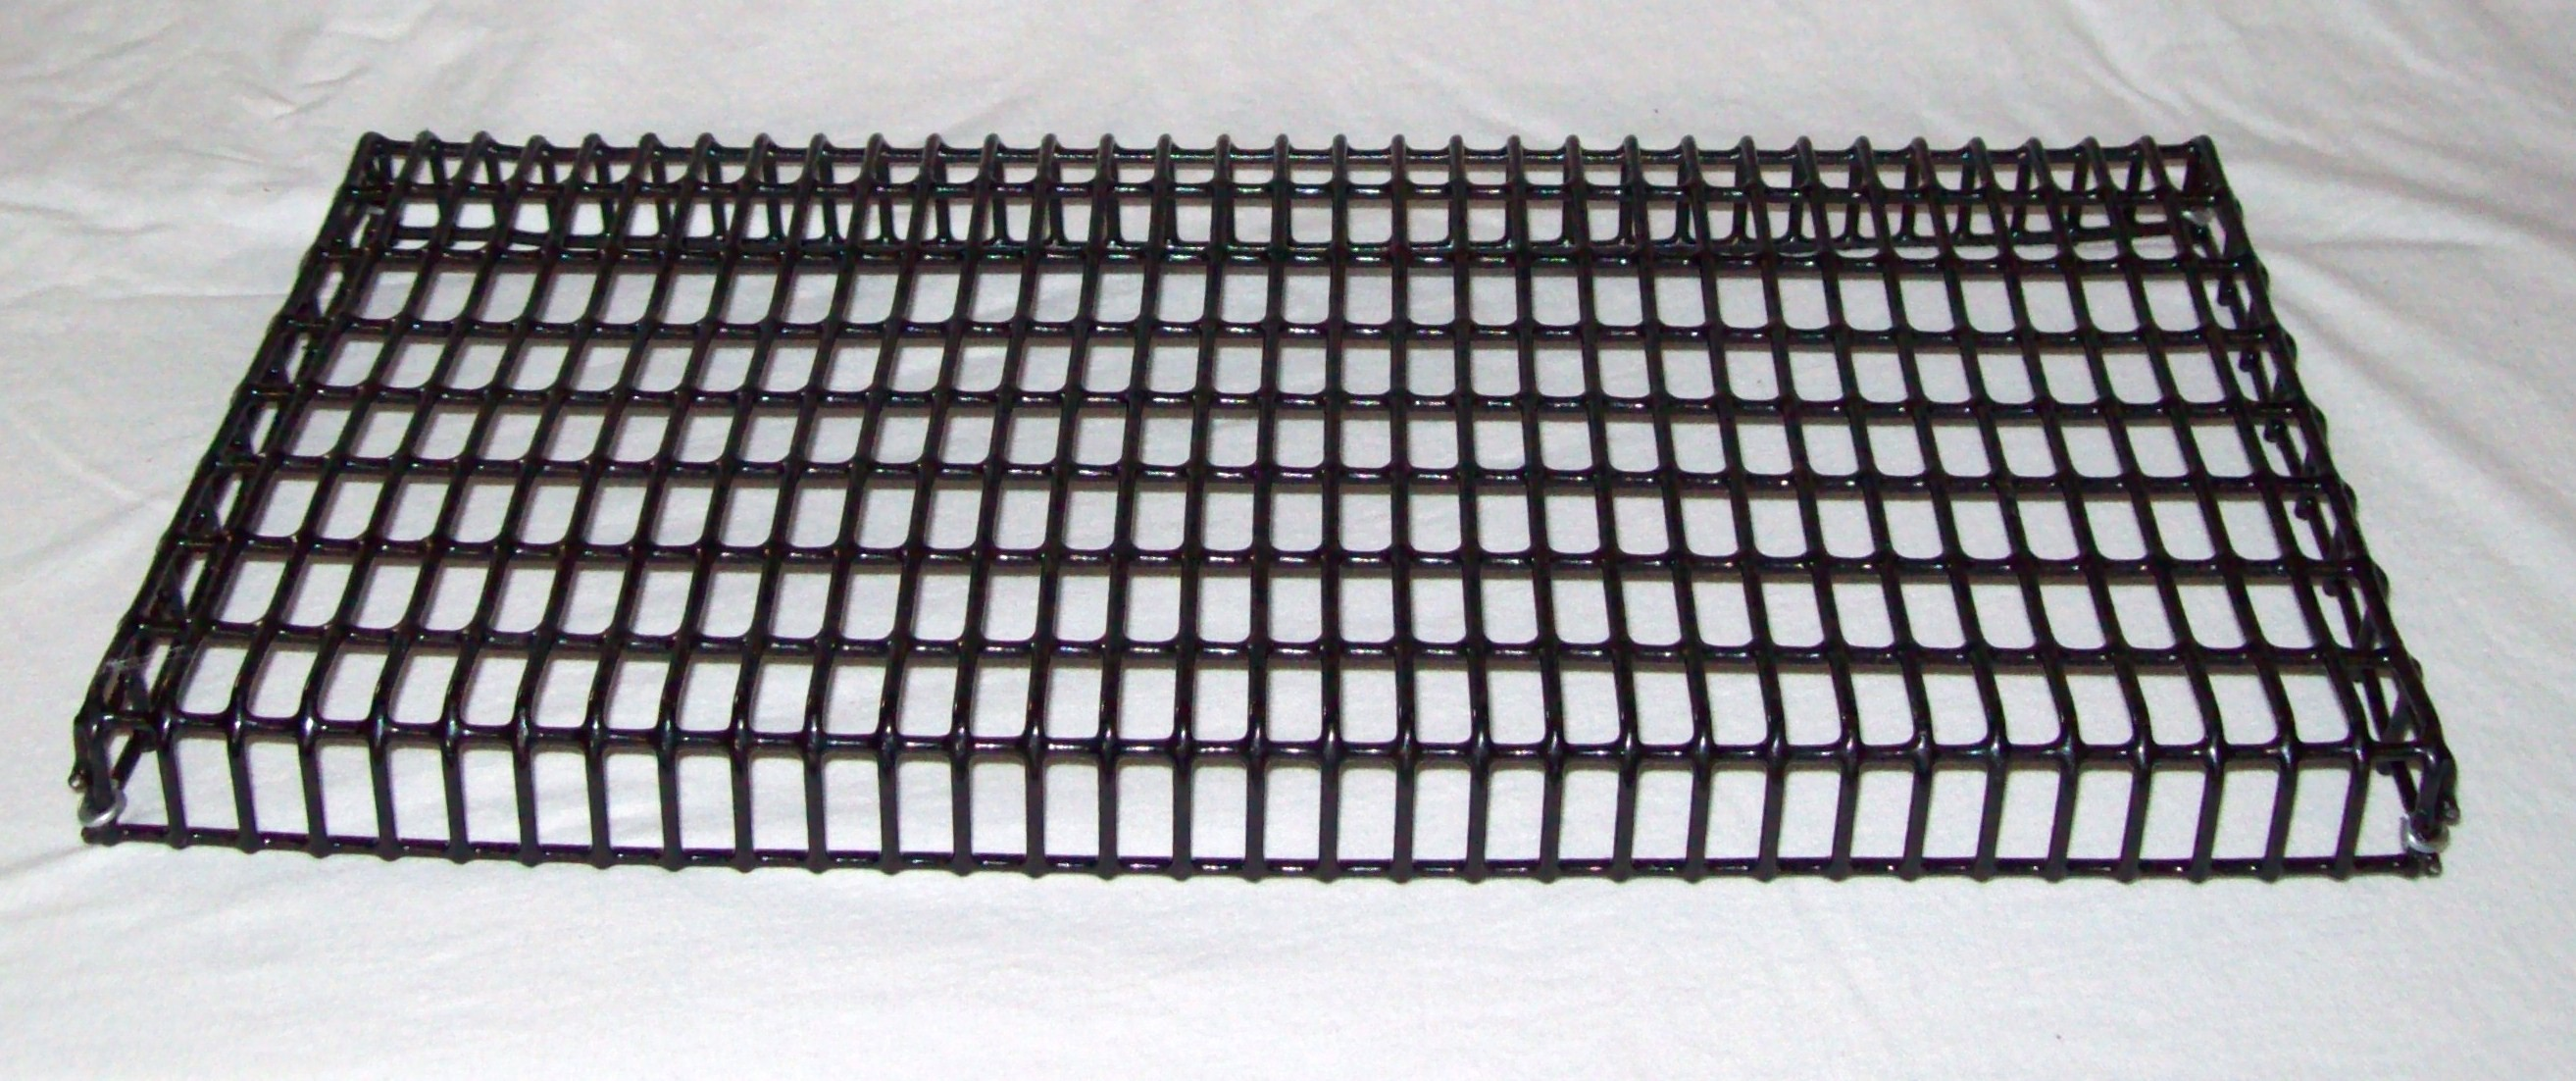 #4F465B Plasti Crate Products And Services Most Effective 4865 Large Floor Grates pictures with 2627x1102 px on helpvideos.info - Air Conditioners, Air Coolers and more